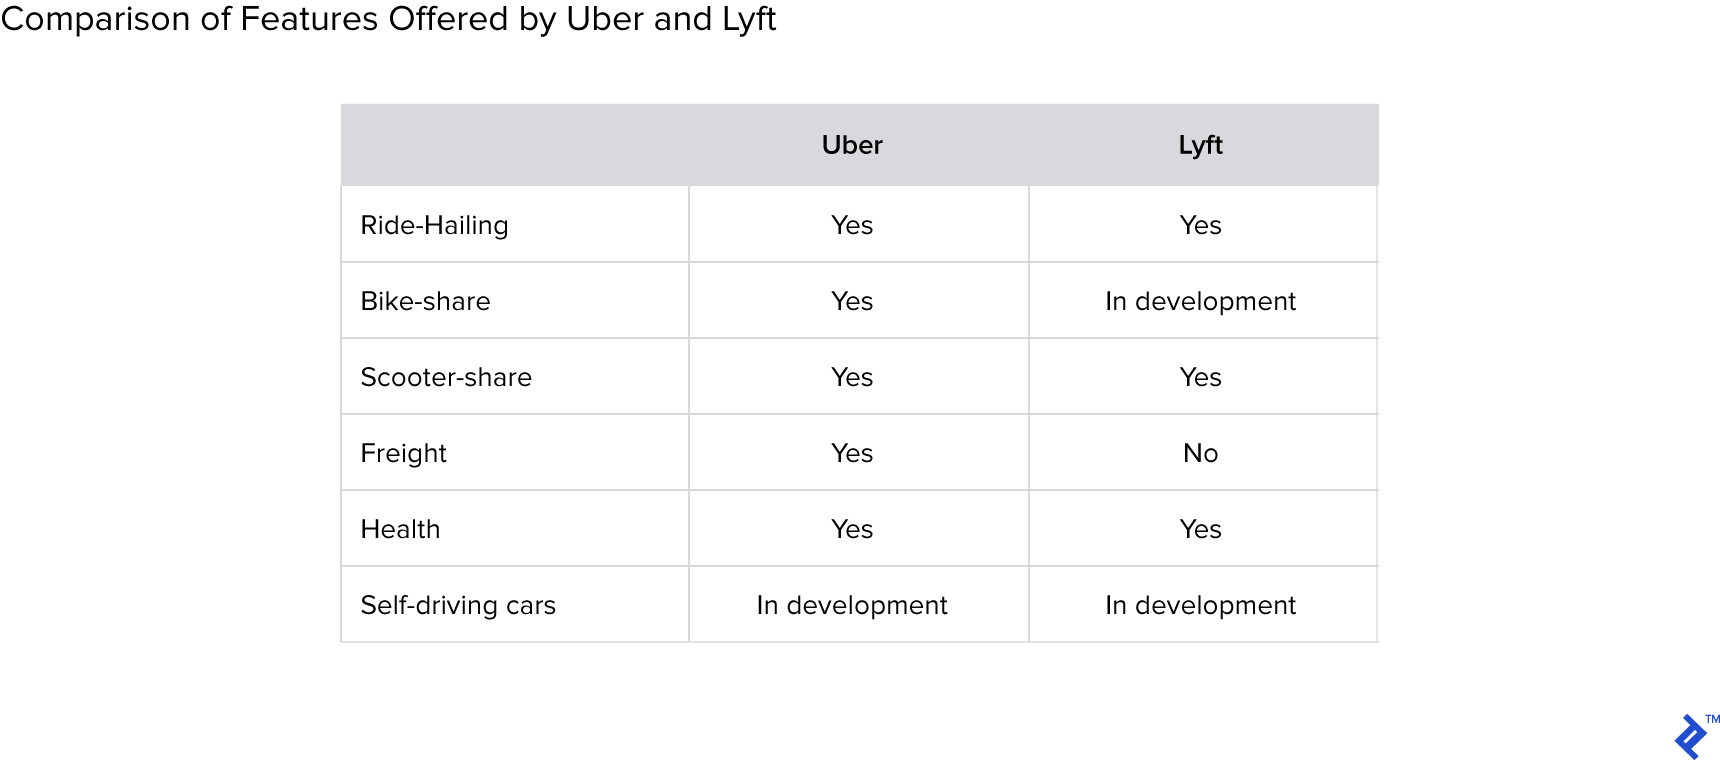 Chart showing comparison of features offered by Uber and Lyft.